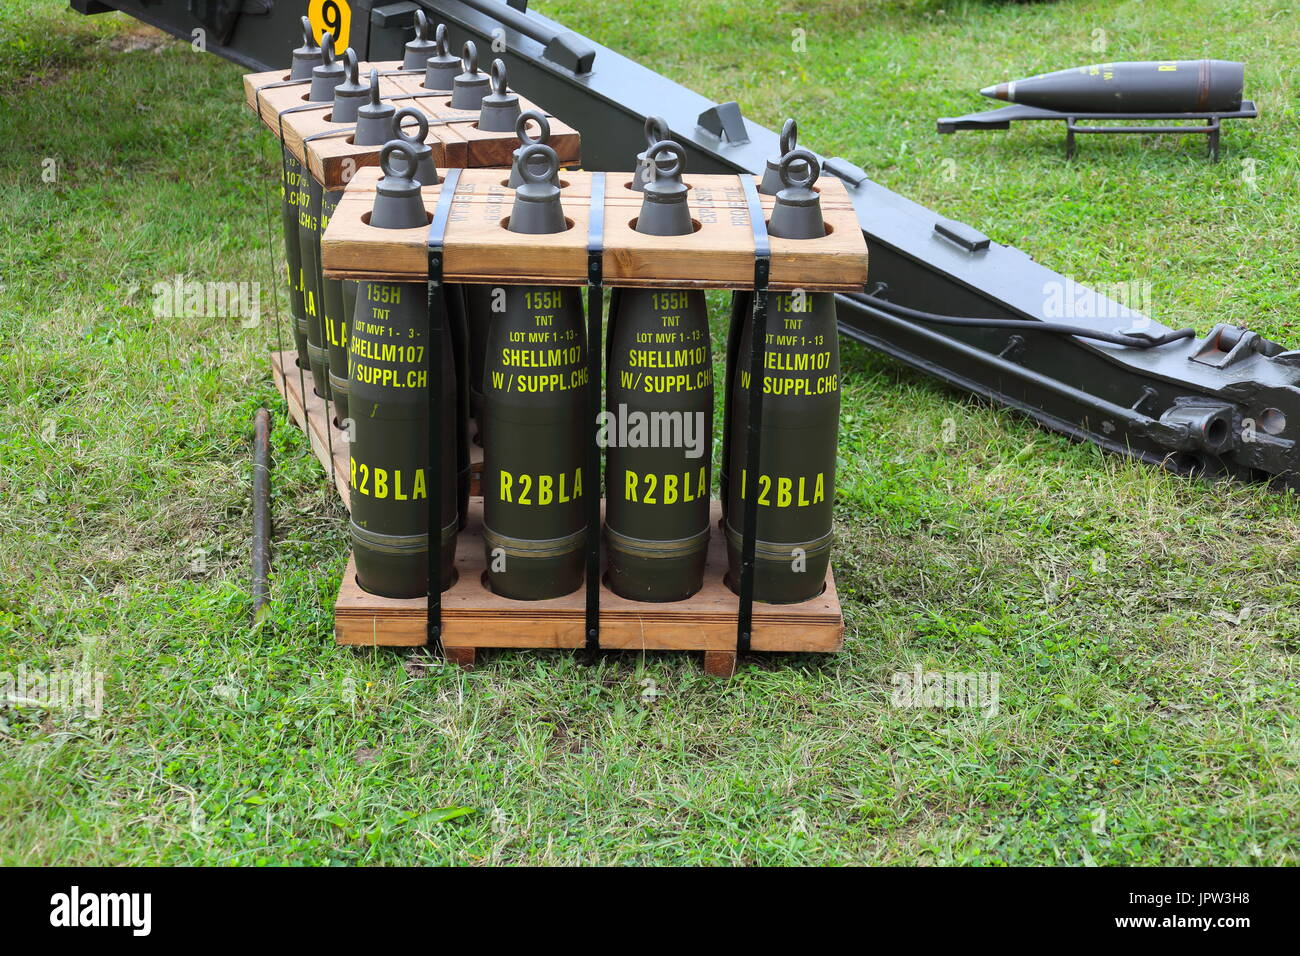 A pellet full of 155 mm Howitzer projectiles strapped up and with lifting eyes fitted in place of fuzes, all painted and stencilled with filling info. - Stock Image